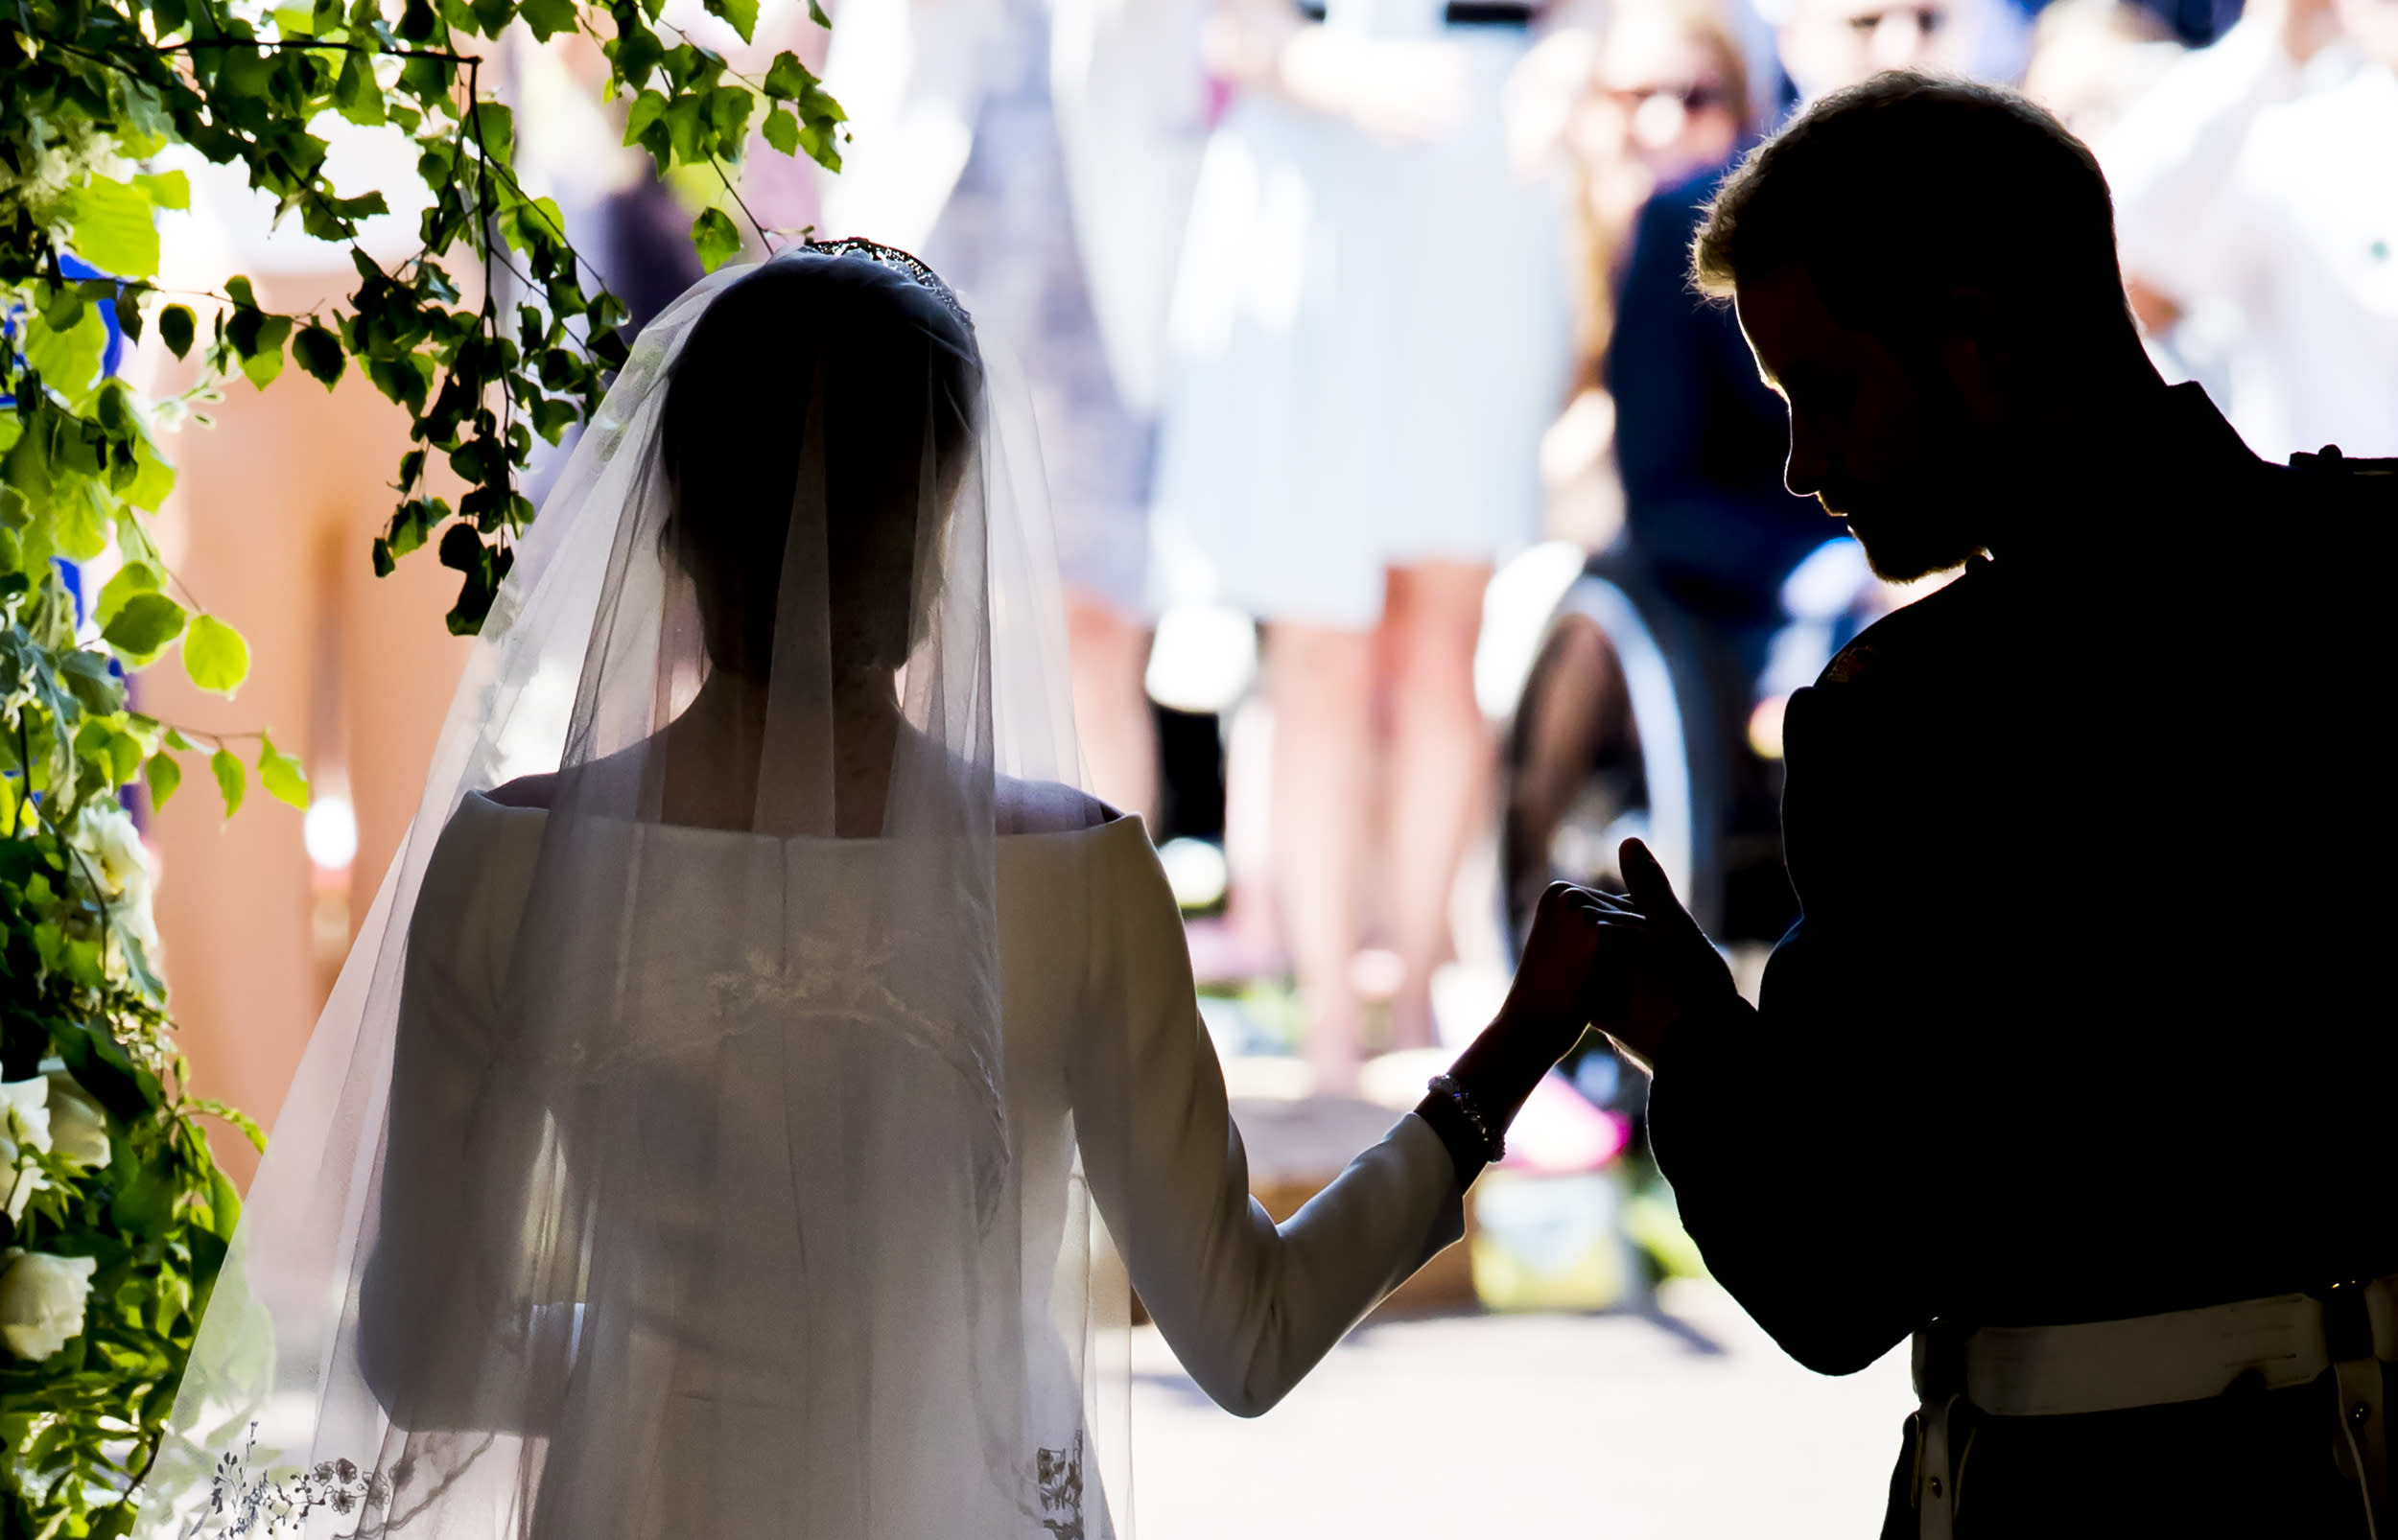 <p>The Duke and Duchess of Sussex on the steps of St George's Chapel at Windsor Castle following their wedding ceremony in St George's Chapel at Windsor Castle on May 19, 2018 in Windsor, England.</p>  <p>(Photo by Danny Lawson - WPA Pool/Getty Images)</p>